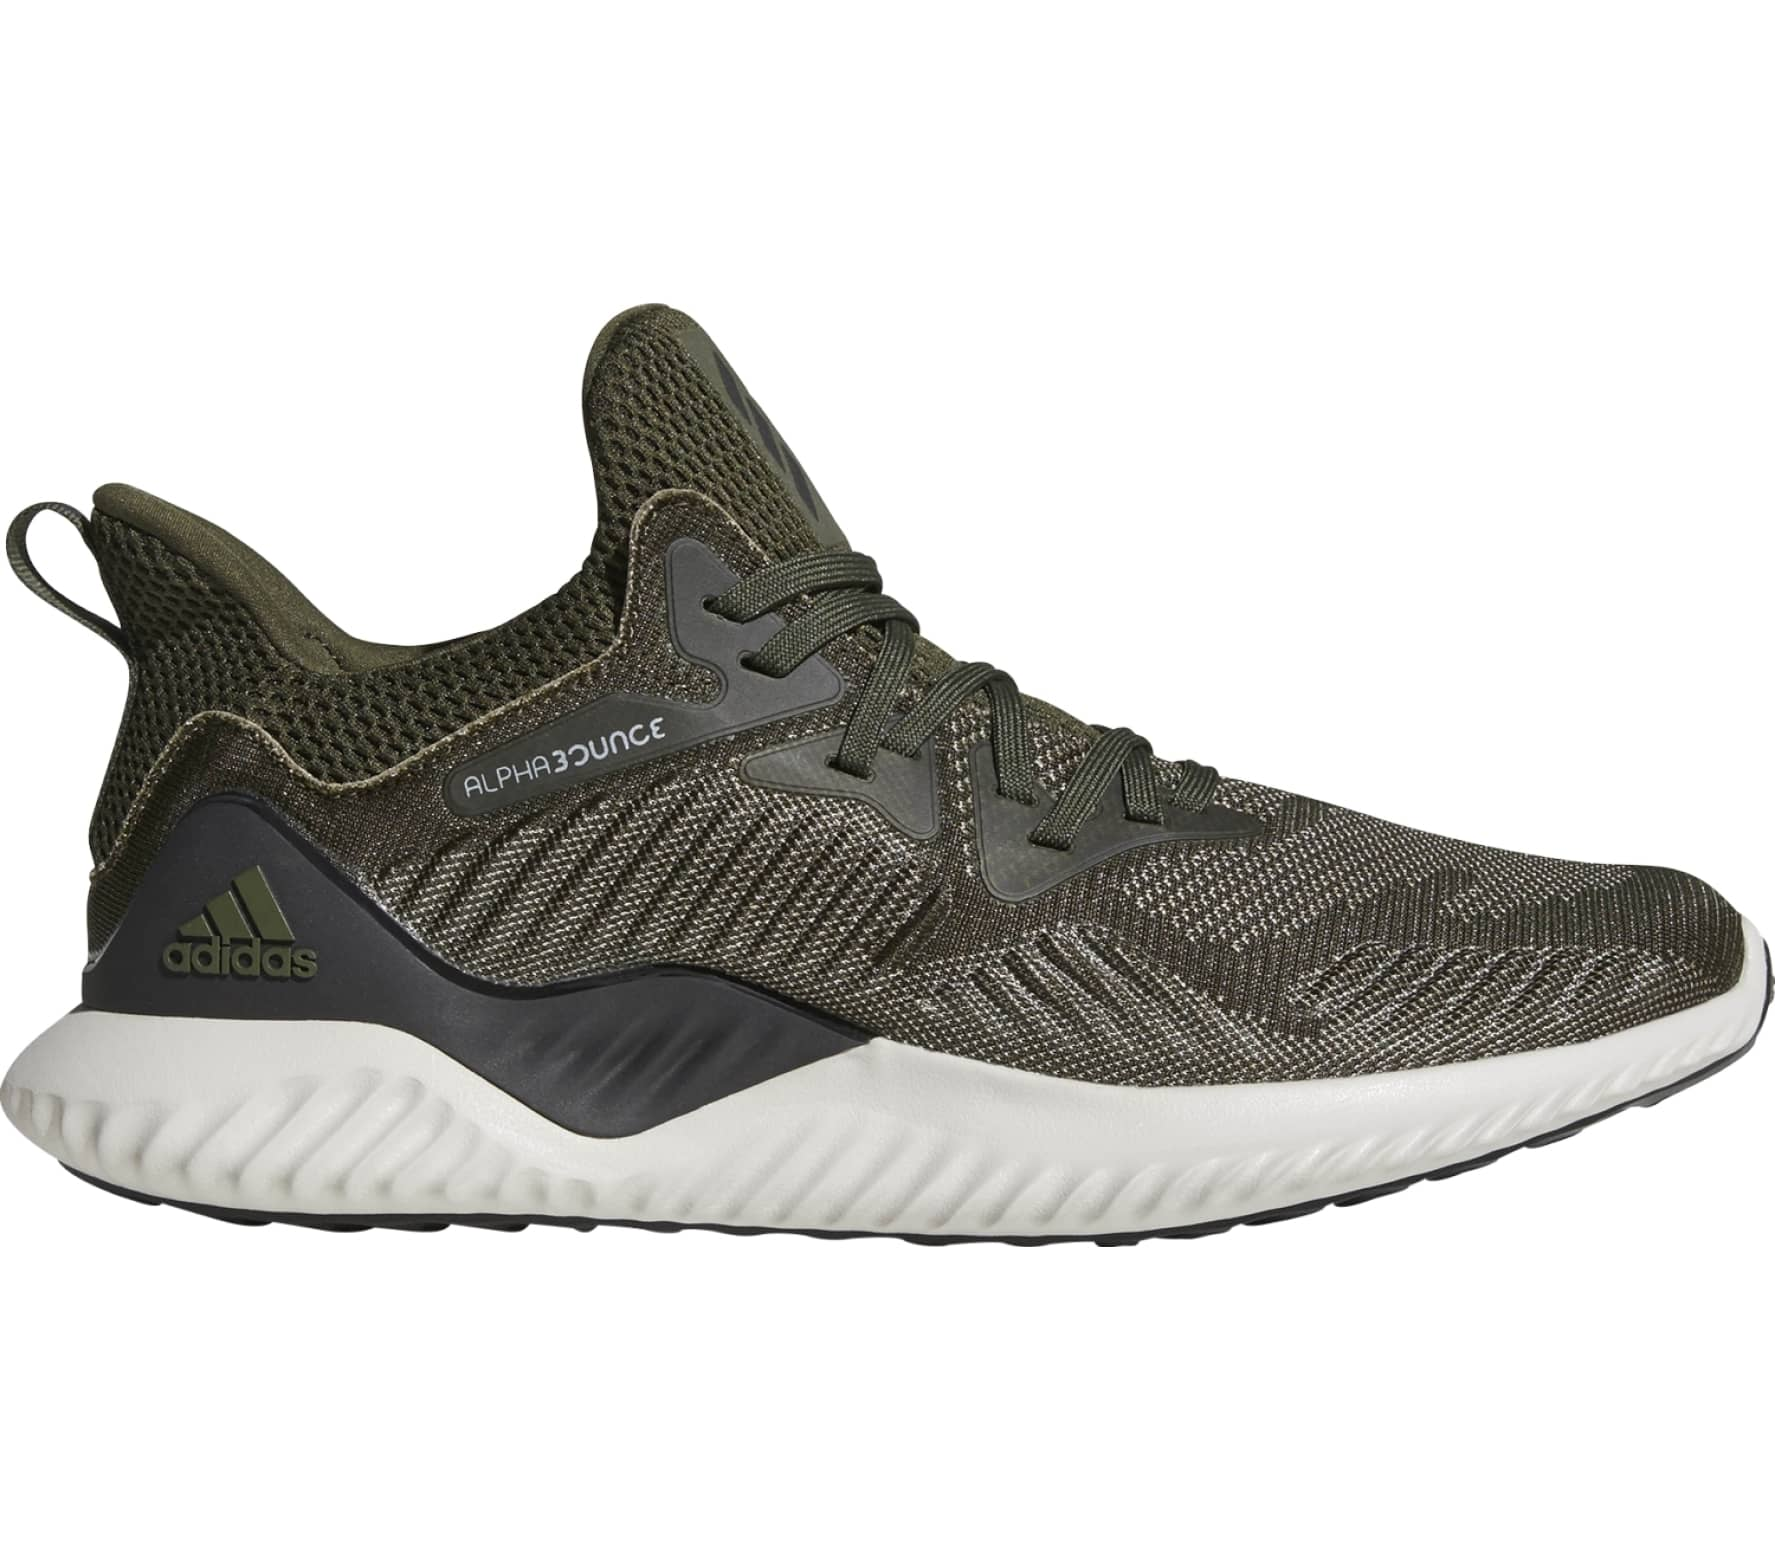 61166200d5b6d Adidas - Alphabounce Beyond men s running shoes (dark green) - buy ...